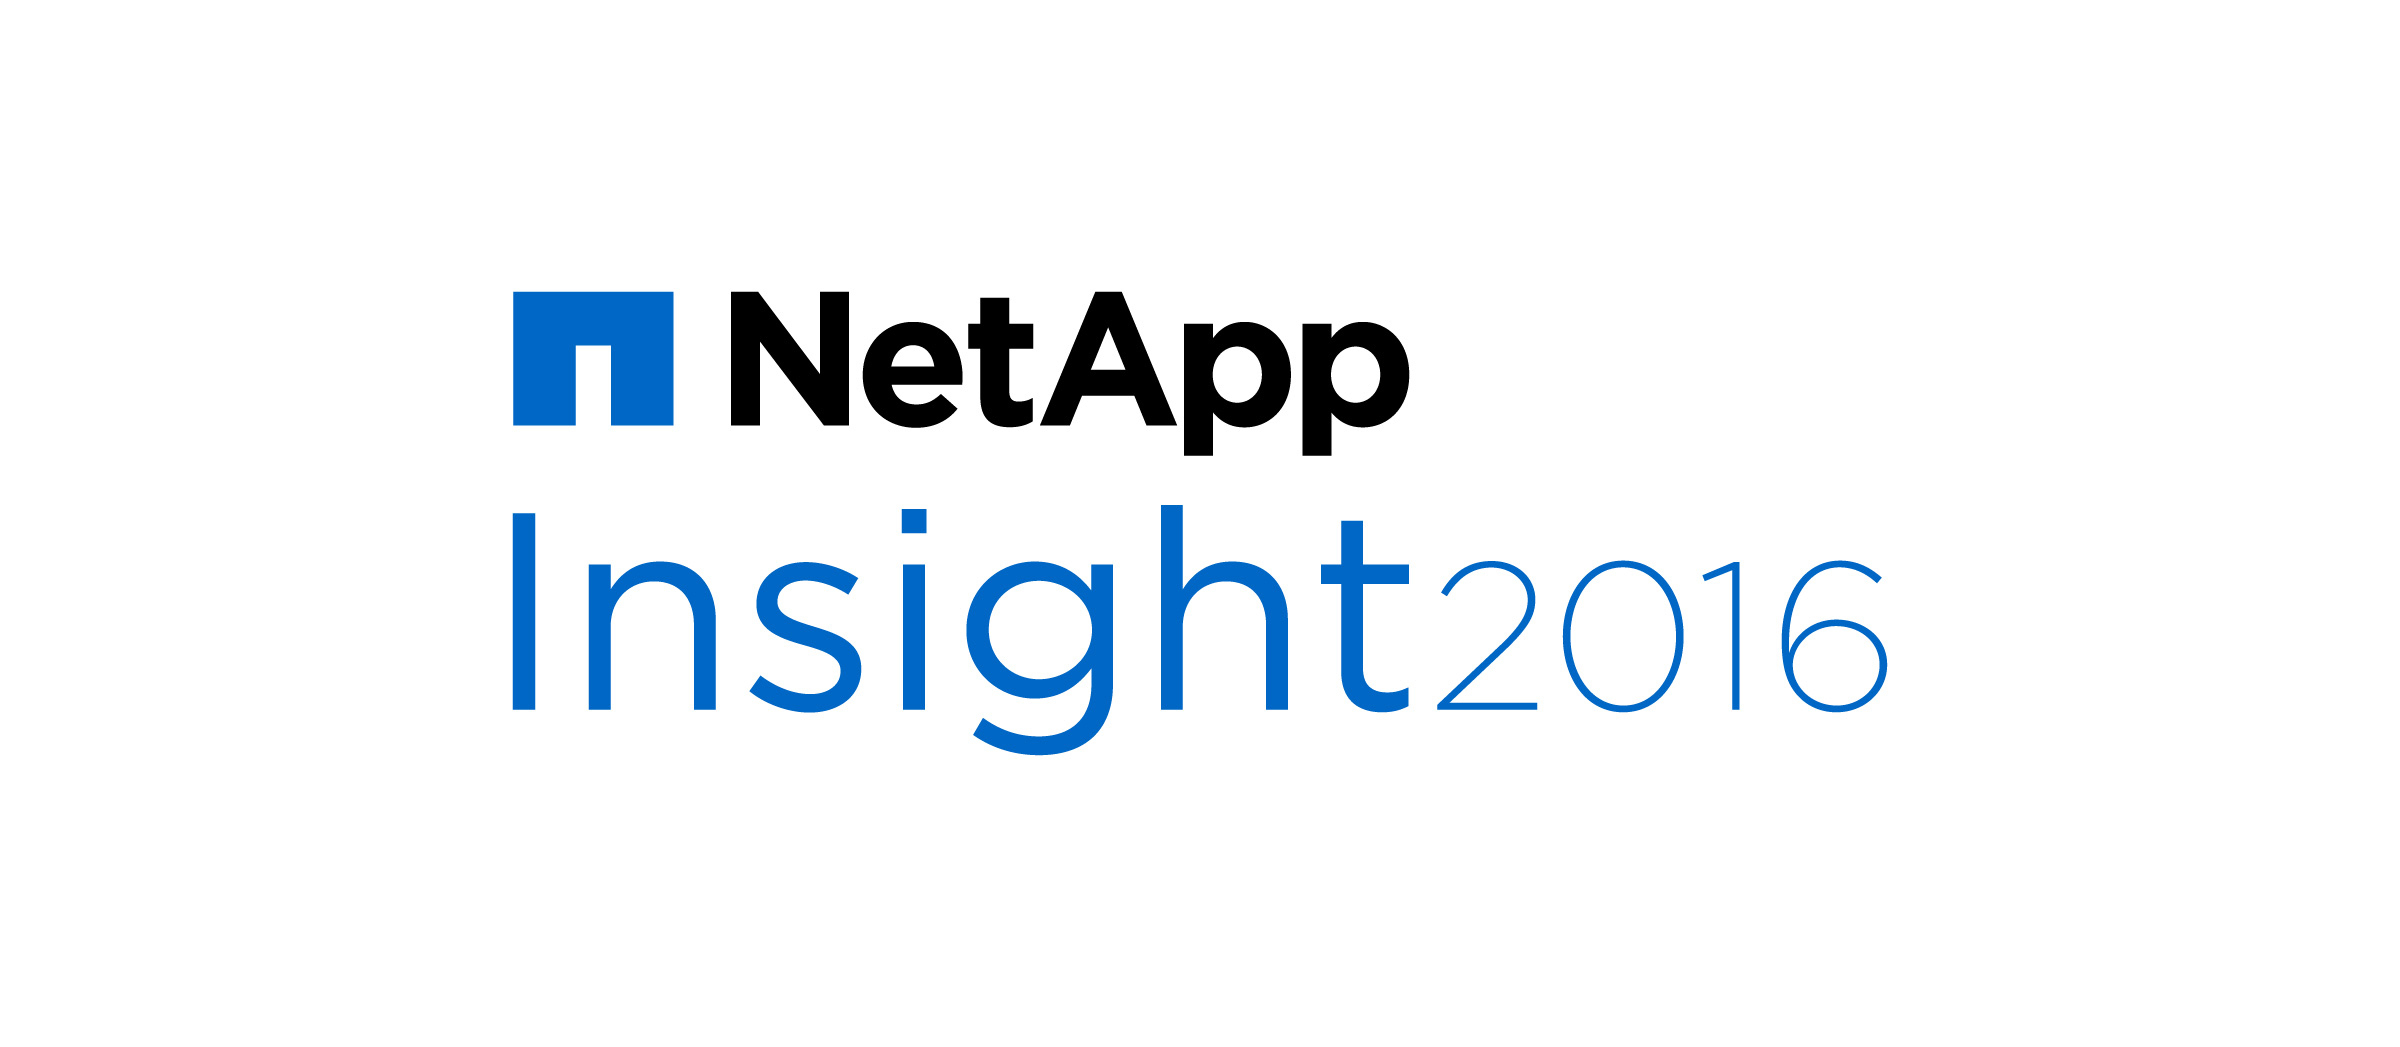 NetApp Insight 2016 in Retrospect